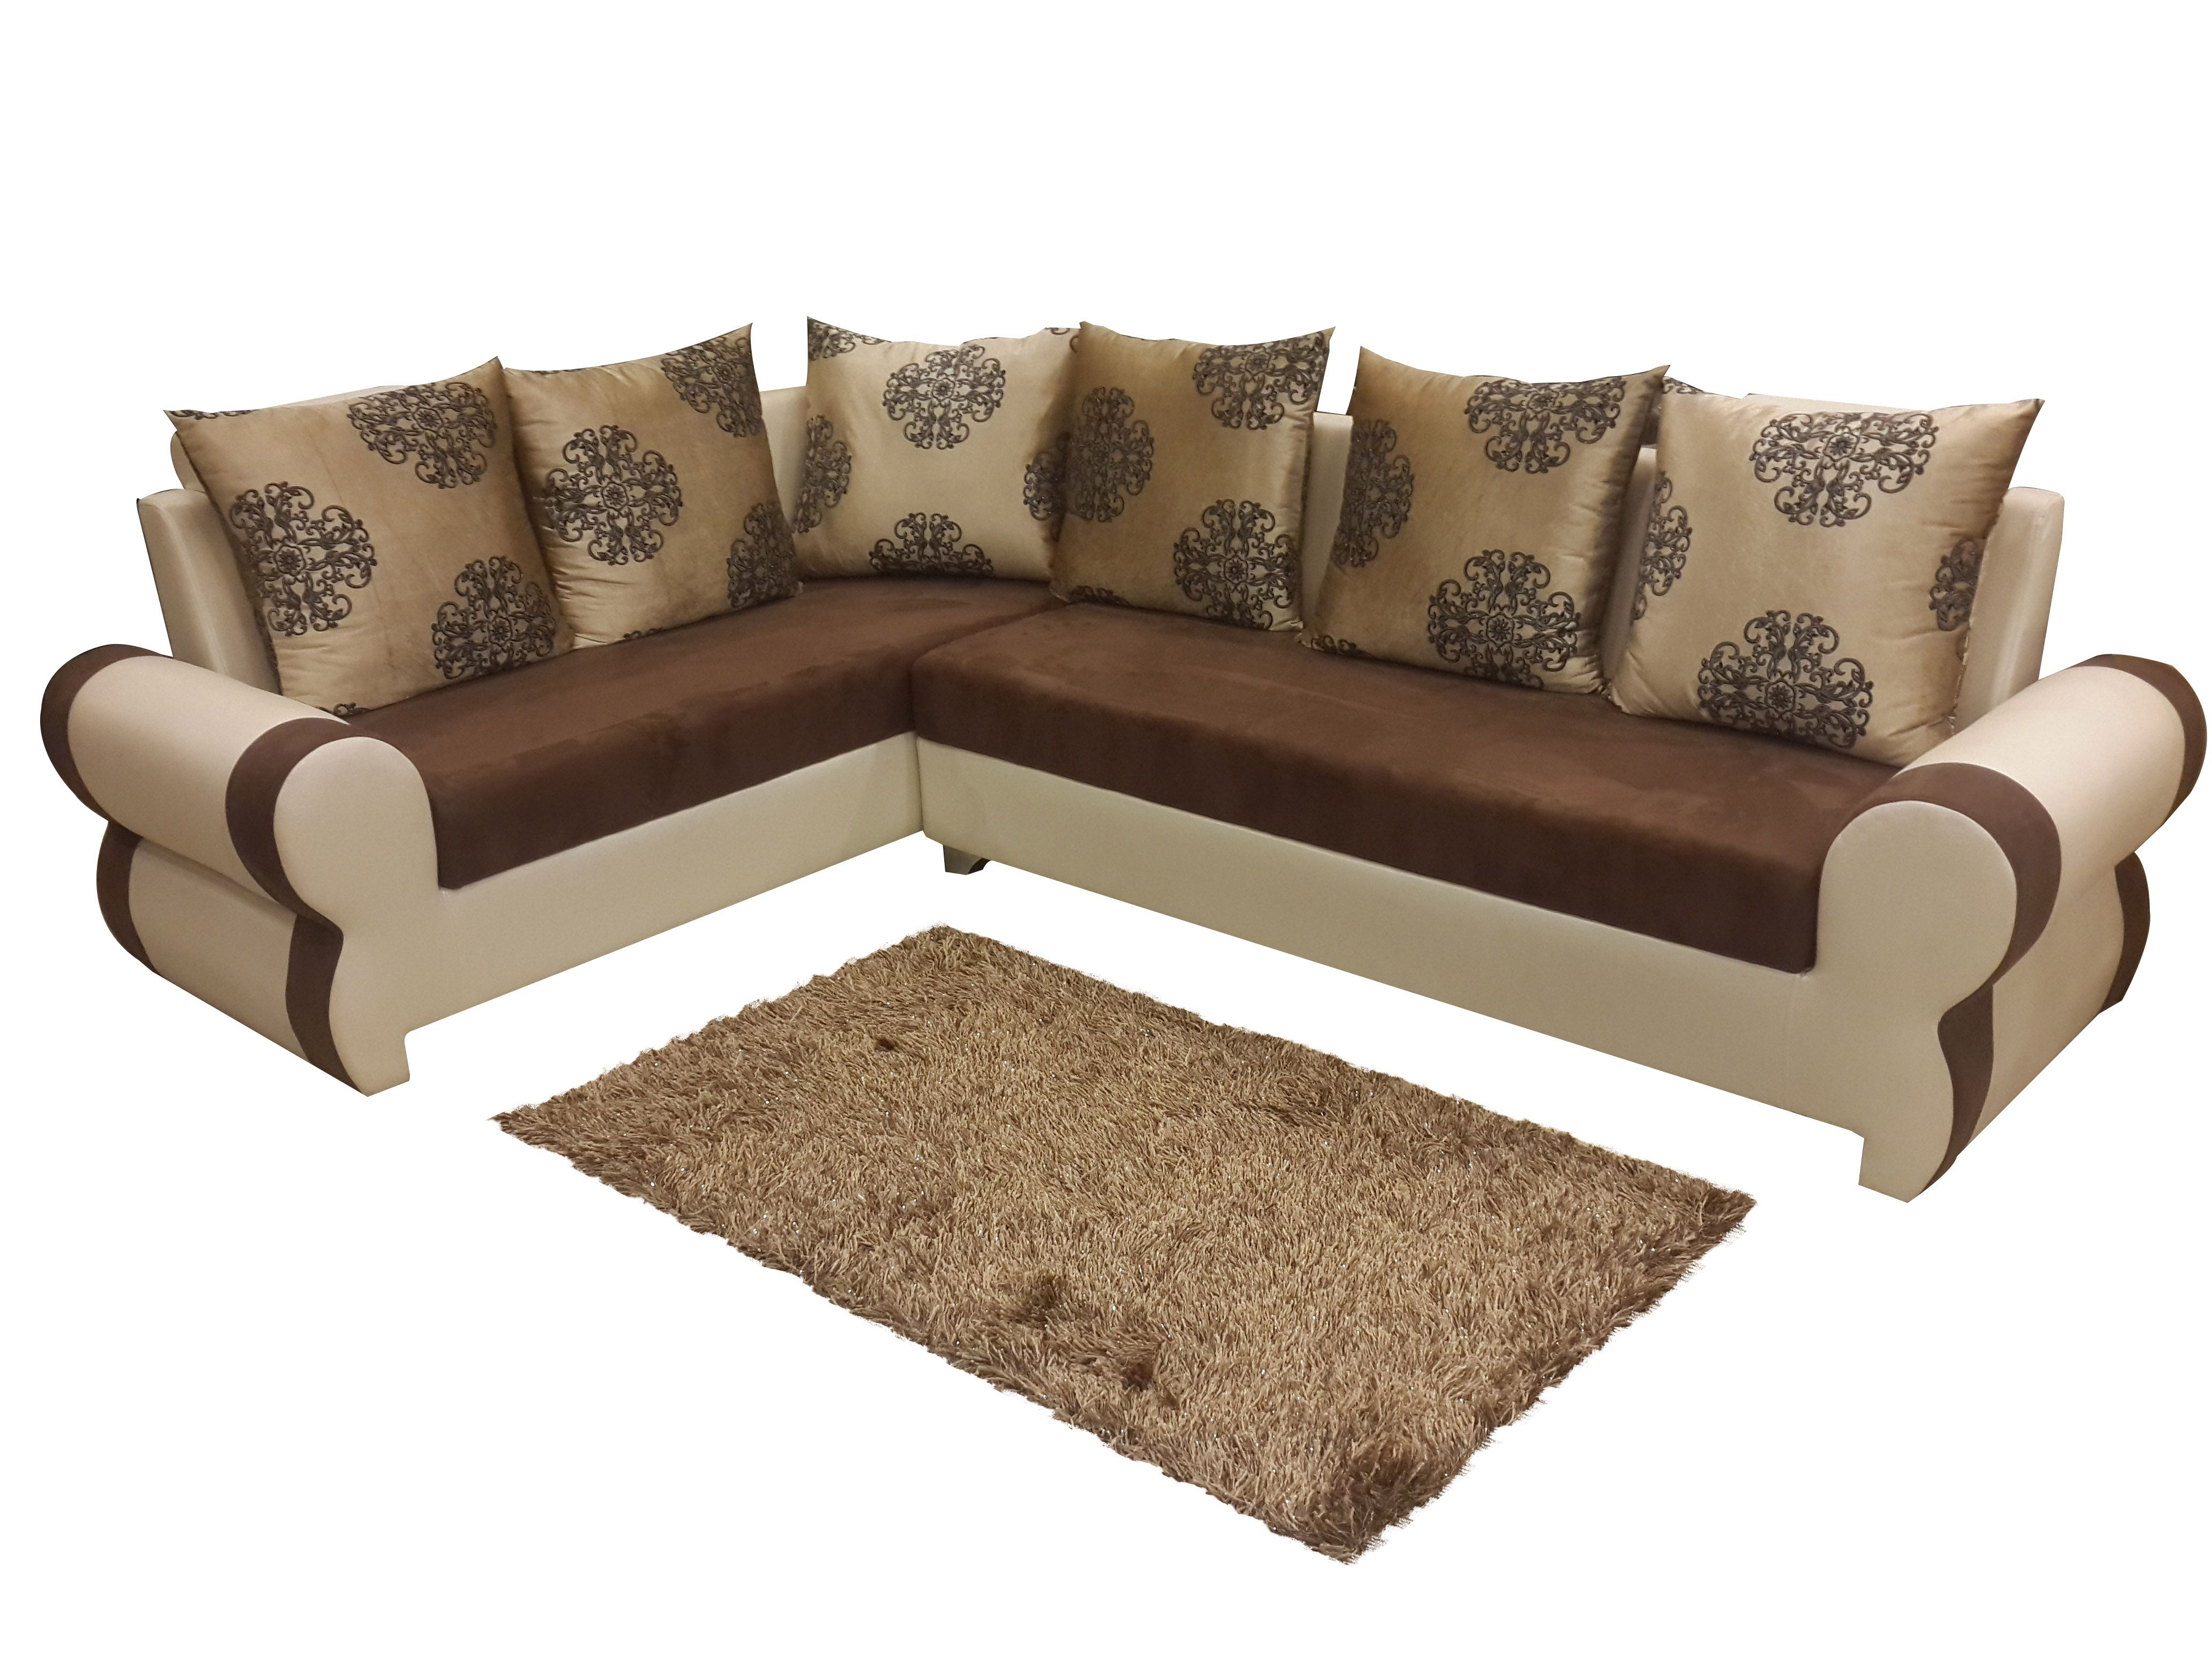 Sofa Set Offers In Mumbai Buy Online Different Types Of Sofa Sets From Suris Furnitech In